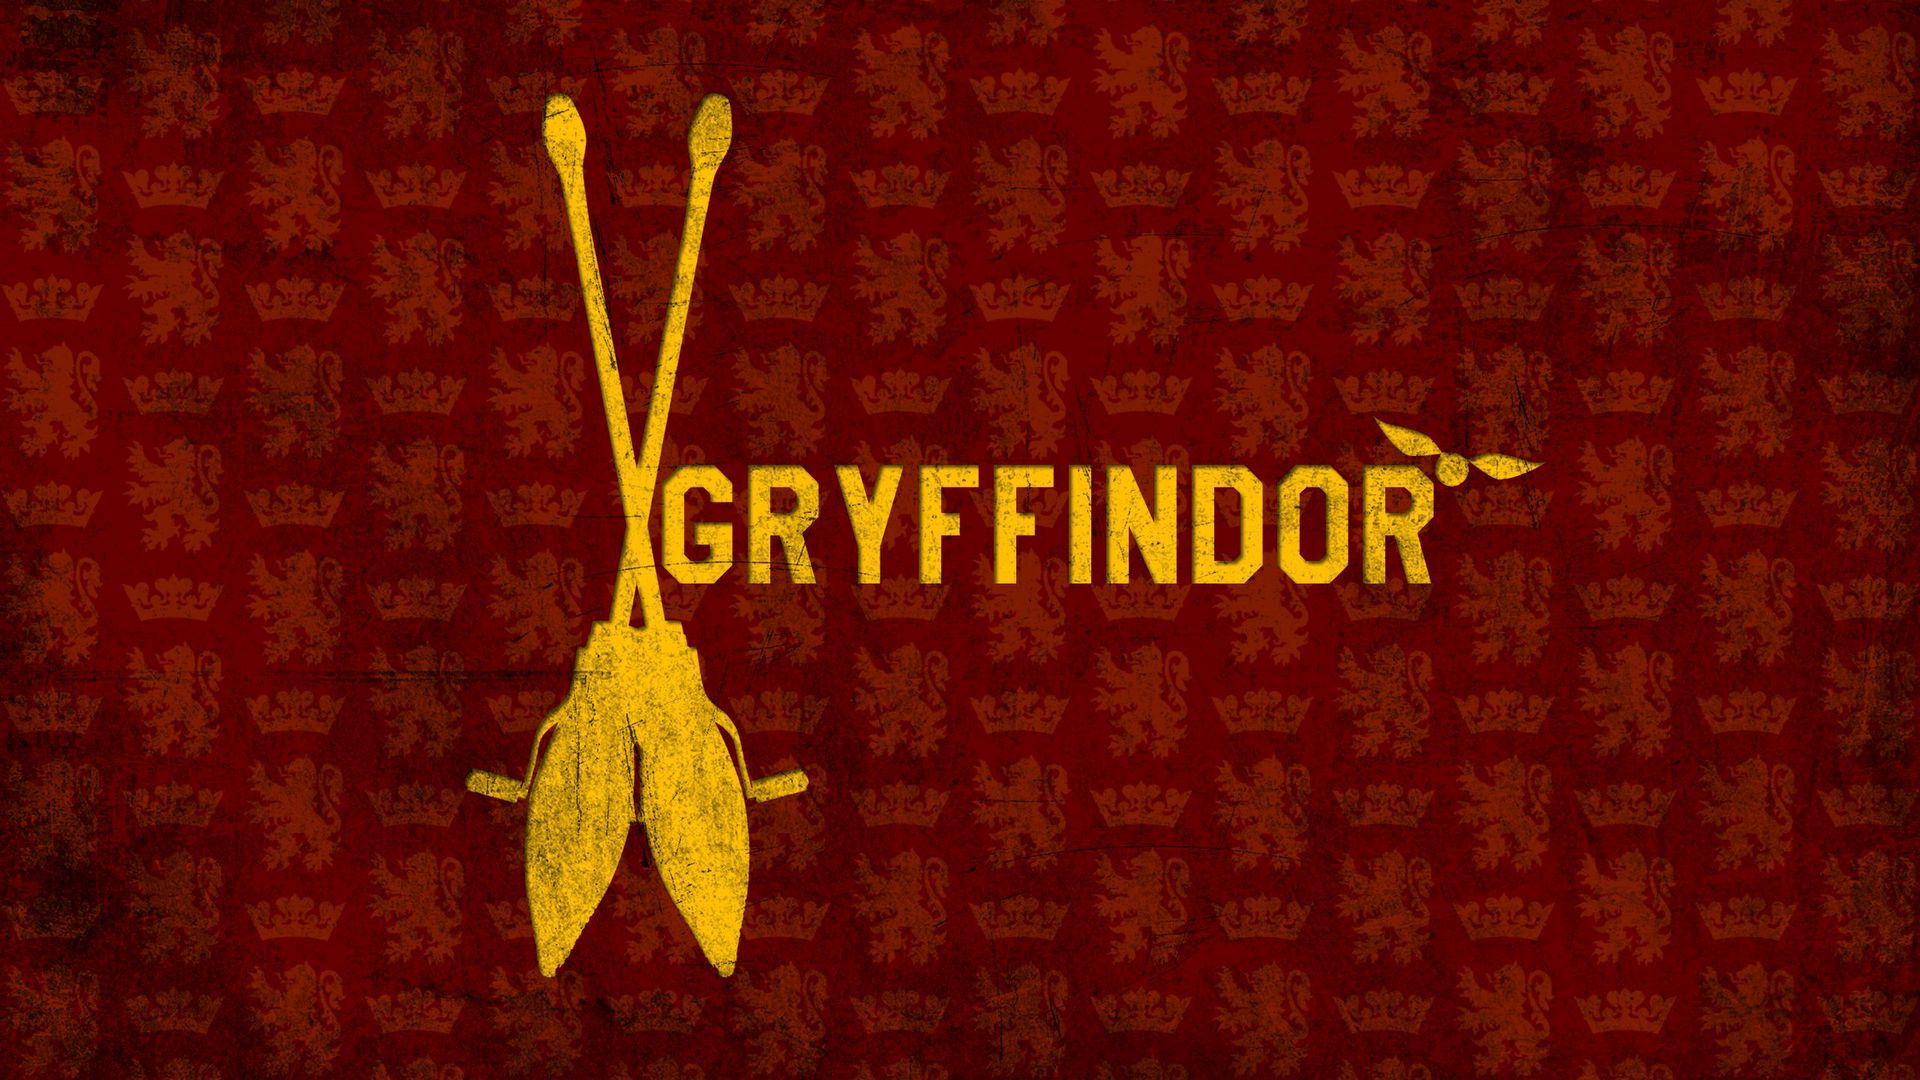 Res: 1920x1080, Slytherin iPhone Wallpaper Fresh Wallpaper Of Gryffindor for Fans Of  Gryffindor Gryffindor Of Slytherin iPhone Wallpaper